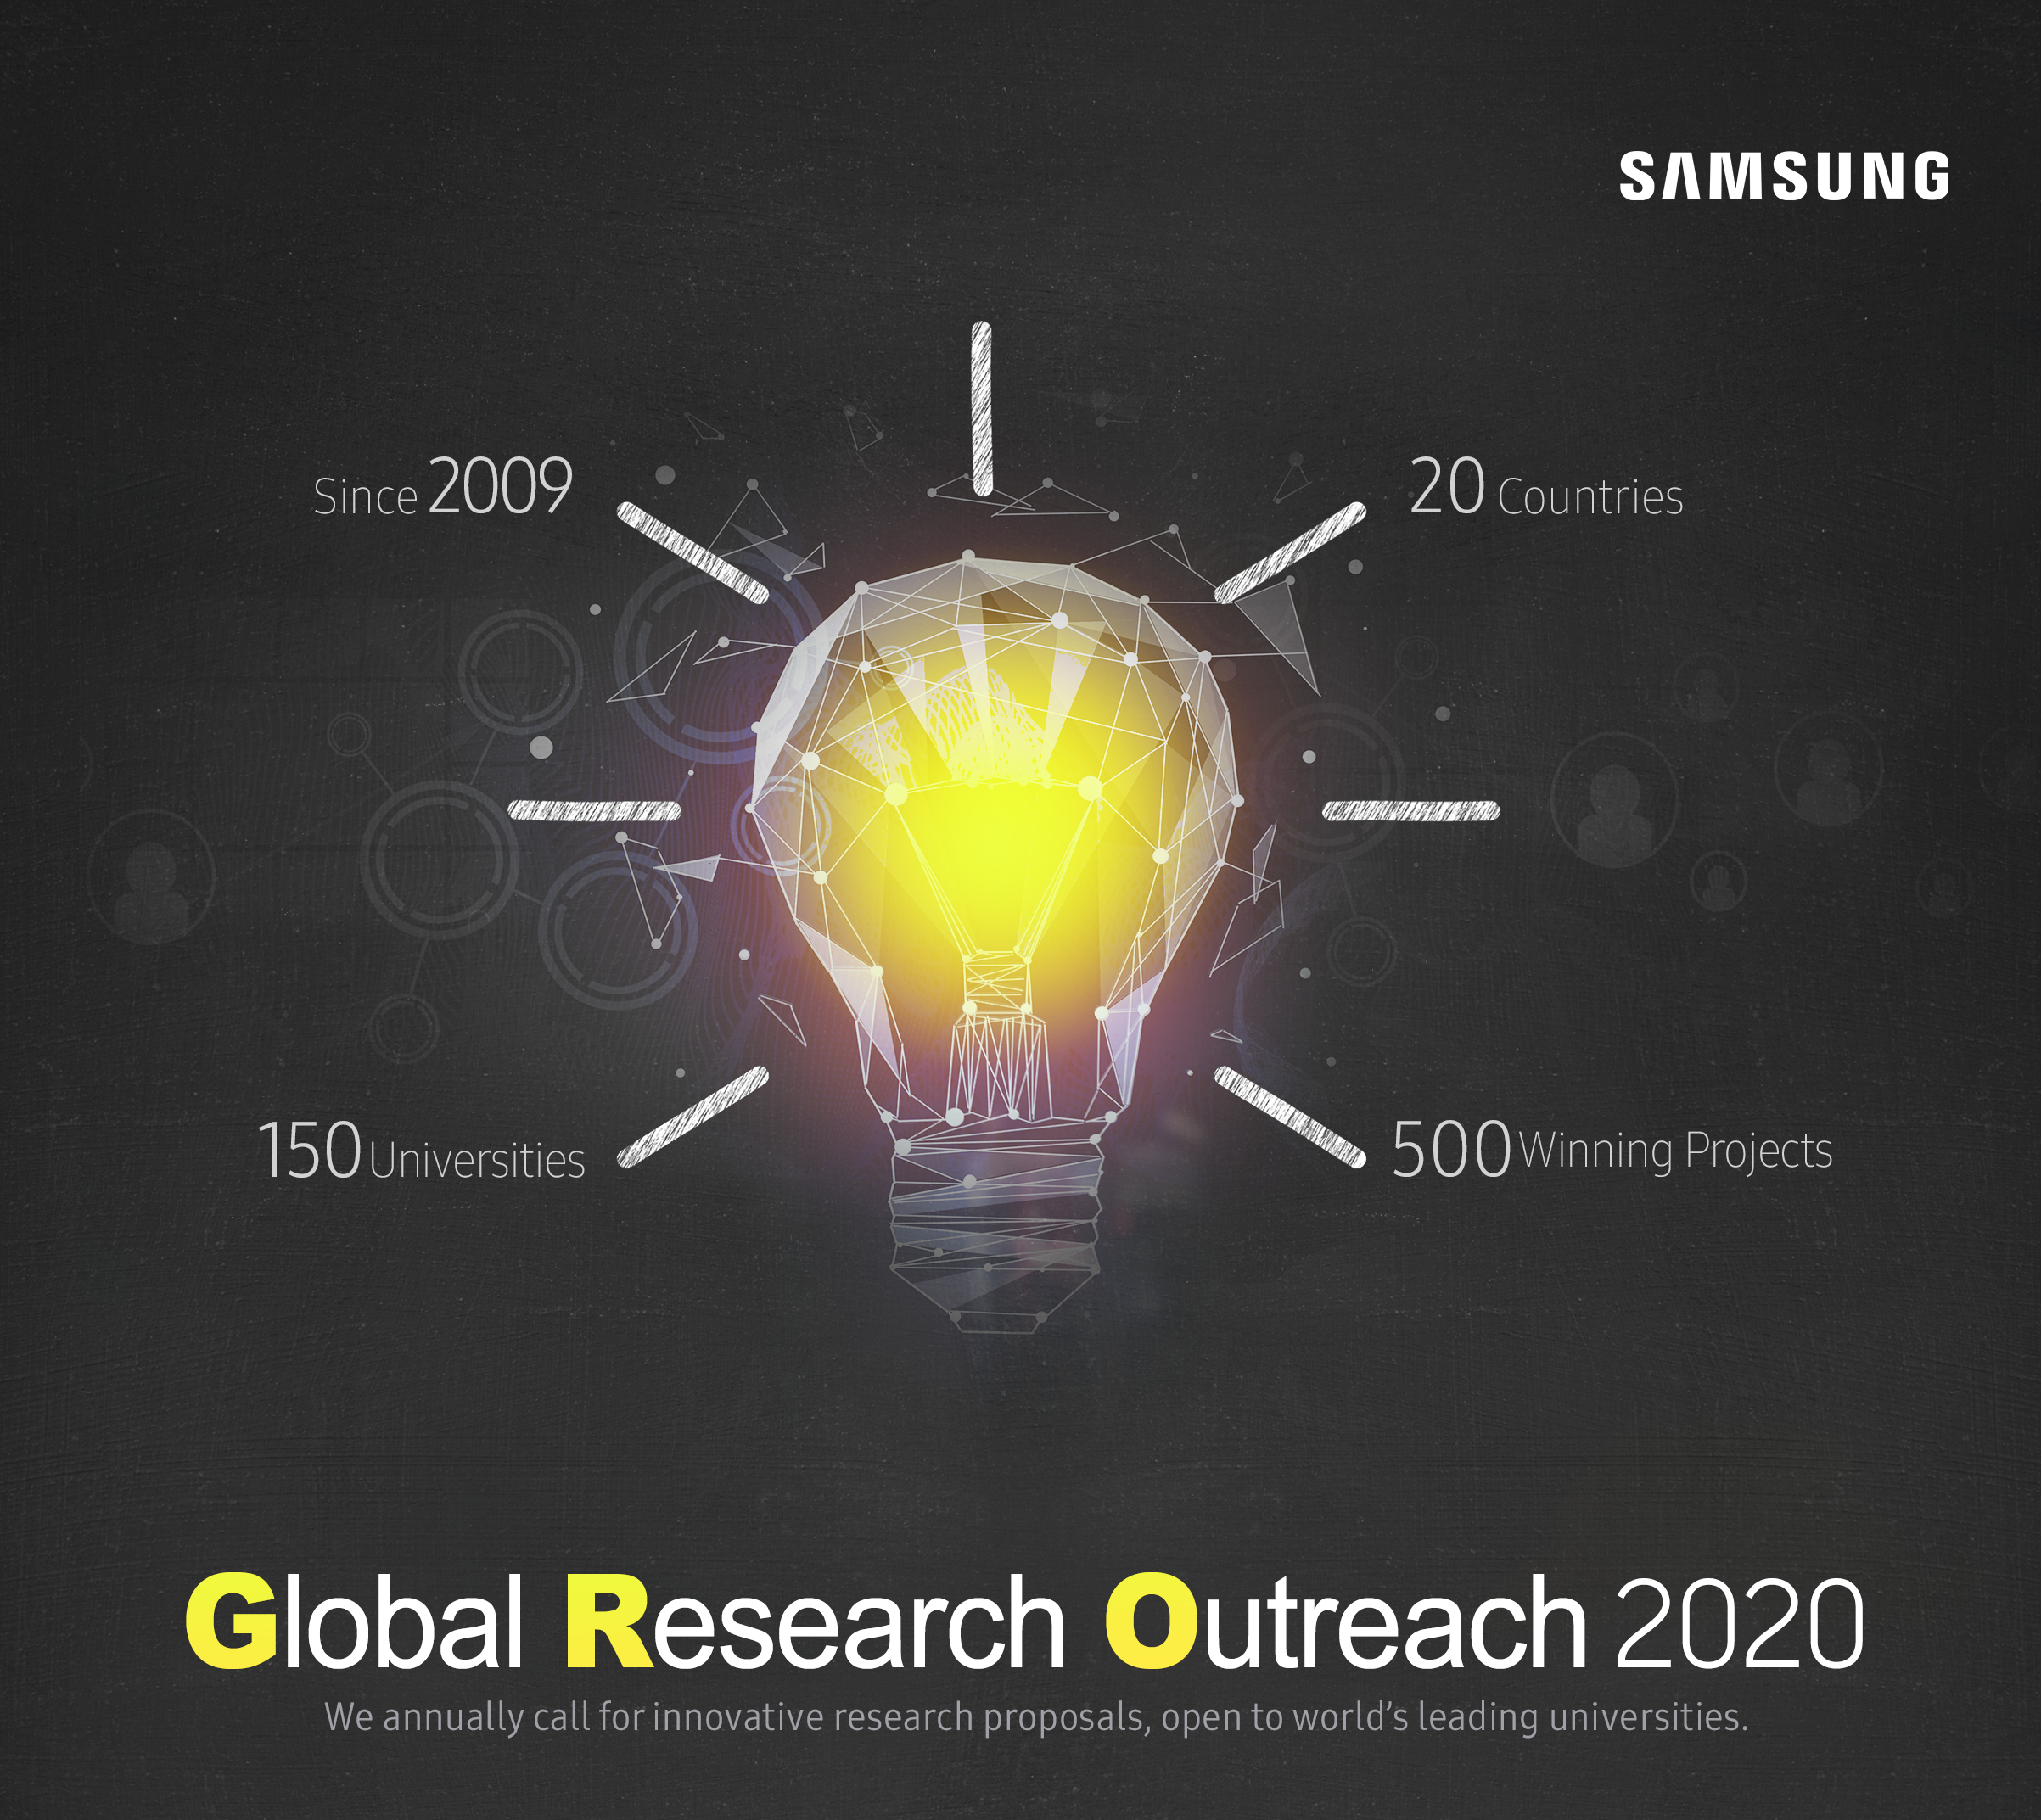 The SAMSUNG Global Research Outreach (GRO) Program 2020